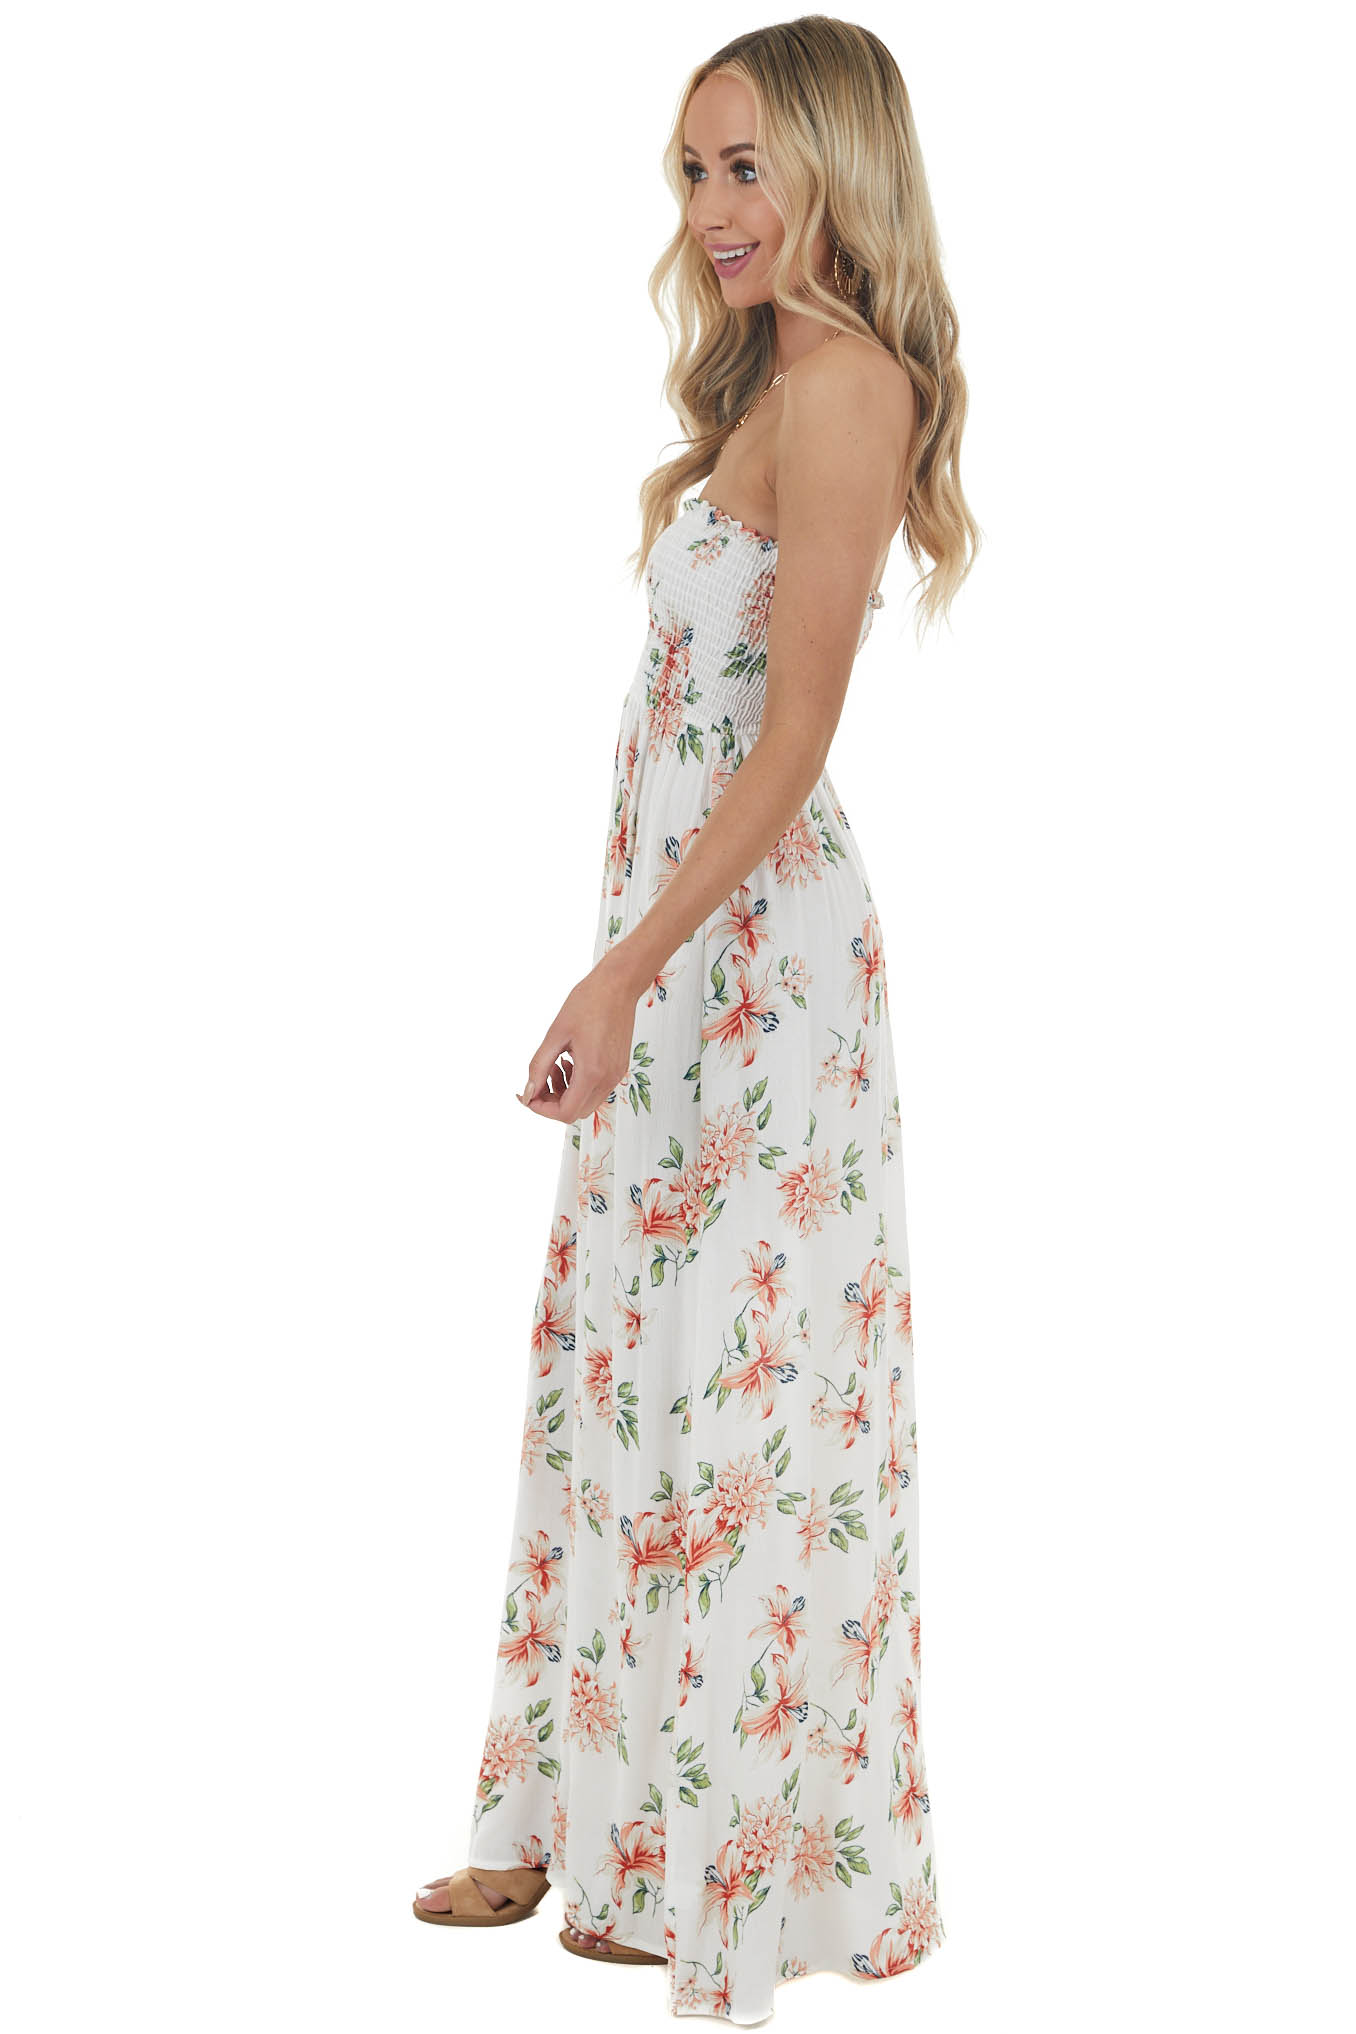 Ivory and Ruby Floral Print Maxi Dress with Smocked Bodice